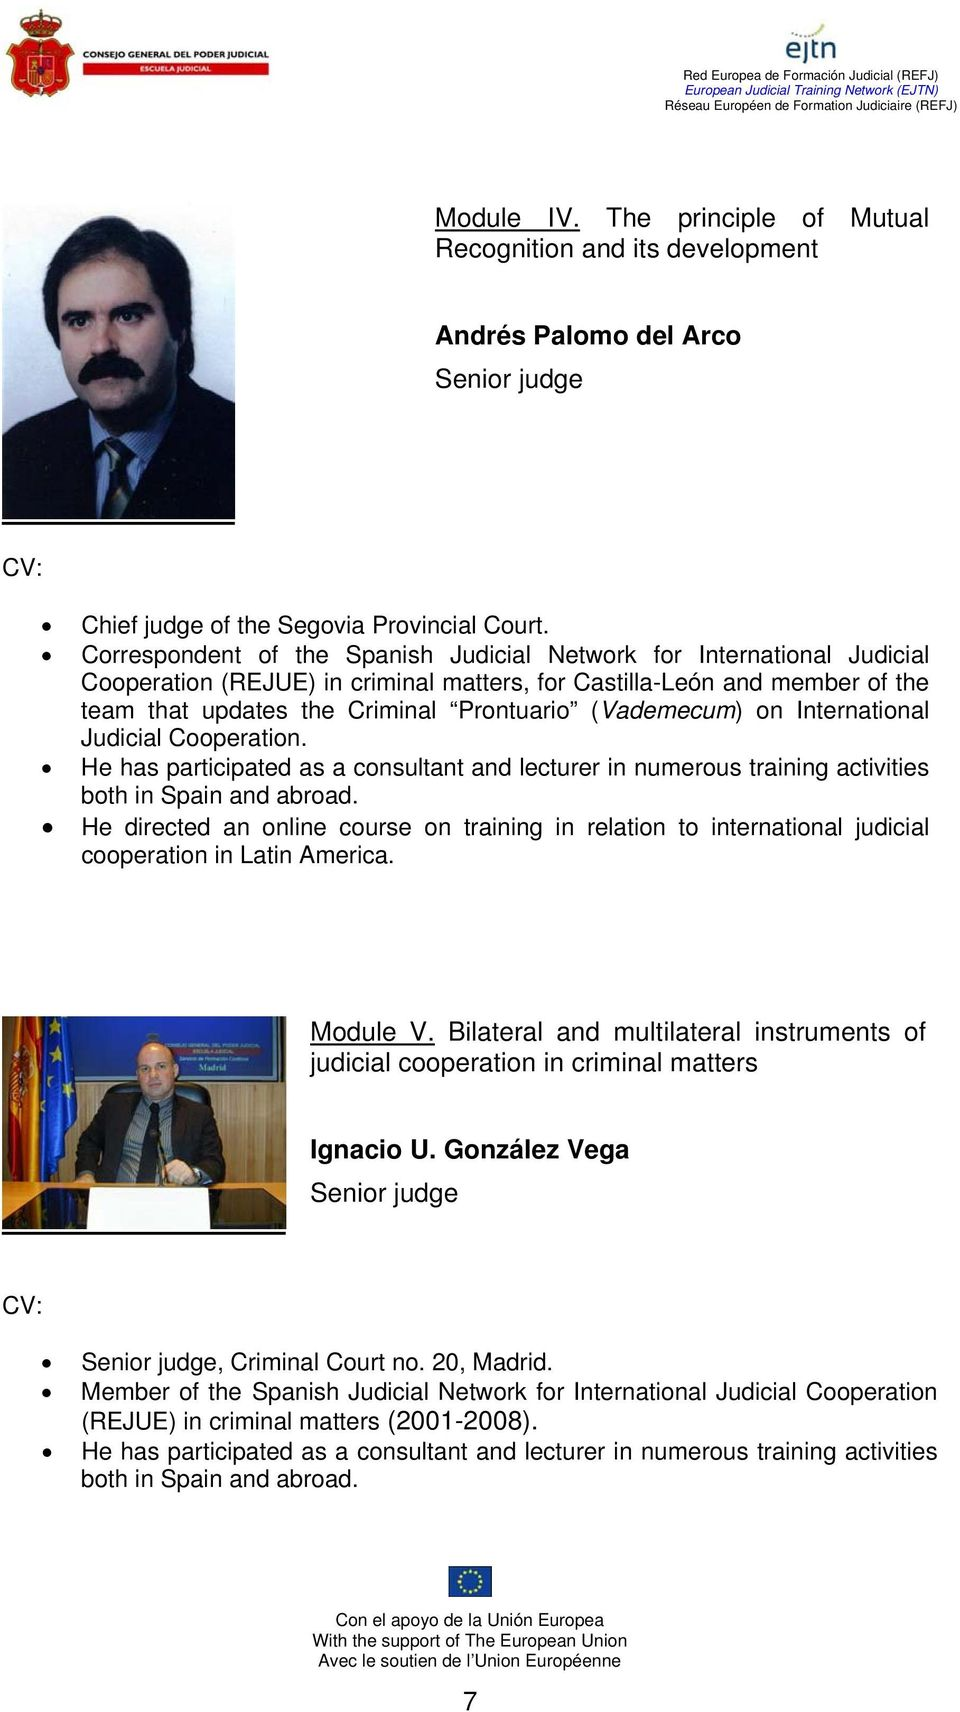 (Vademecum) on International Judicial Cooperation. He has participated as a consultant and lecturer in numerous training activities both in Spain and abroad.